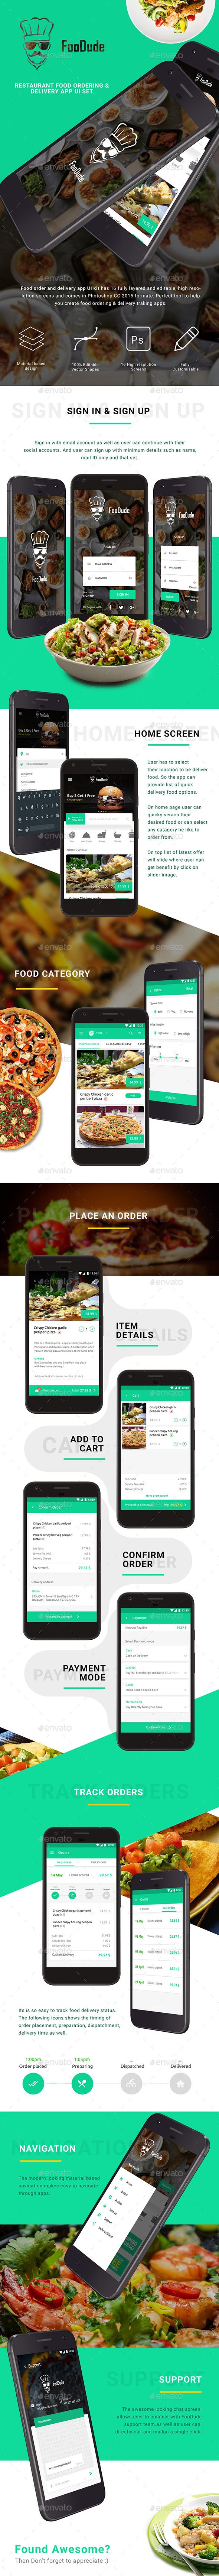 FooDude  |  Food Ordering & Delivery App UI Set (User Interfaces)